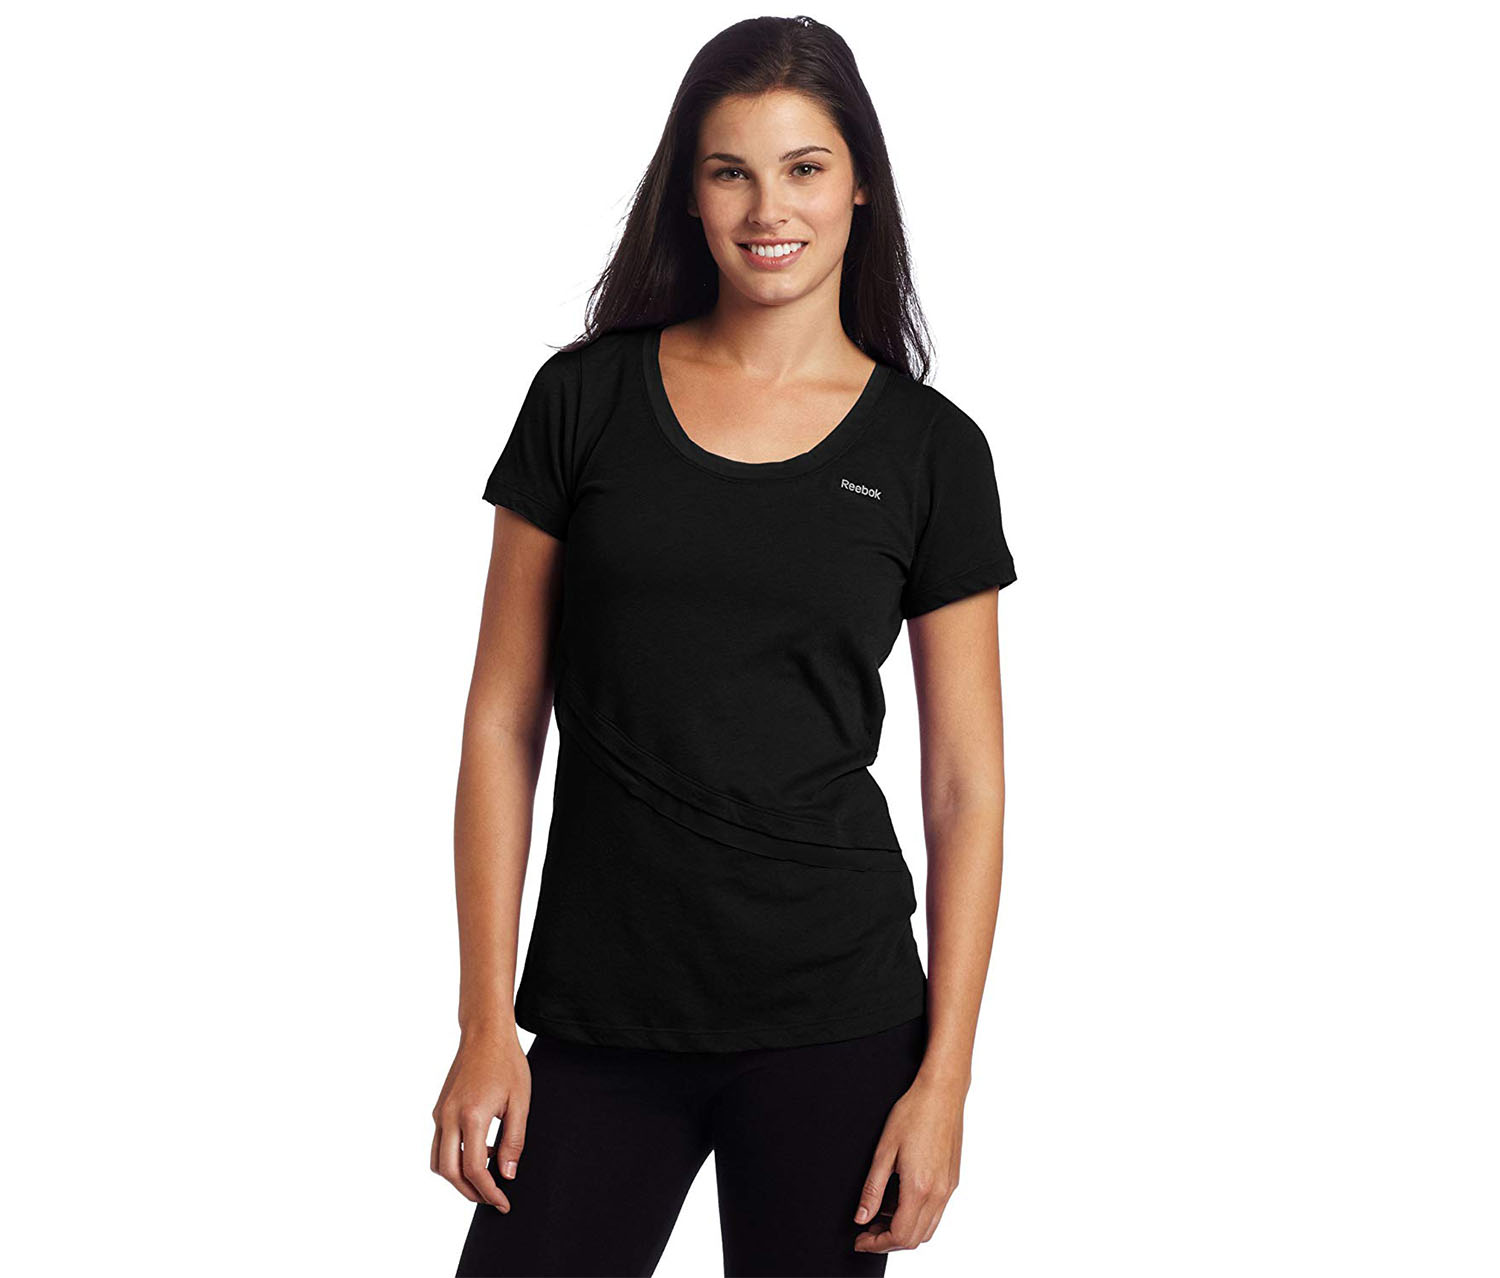 Reebok Women's Sport T-Shirt, Black